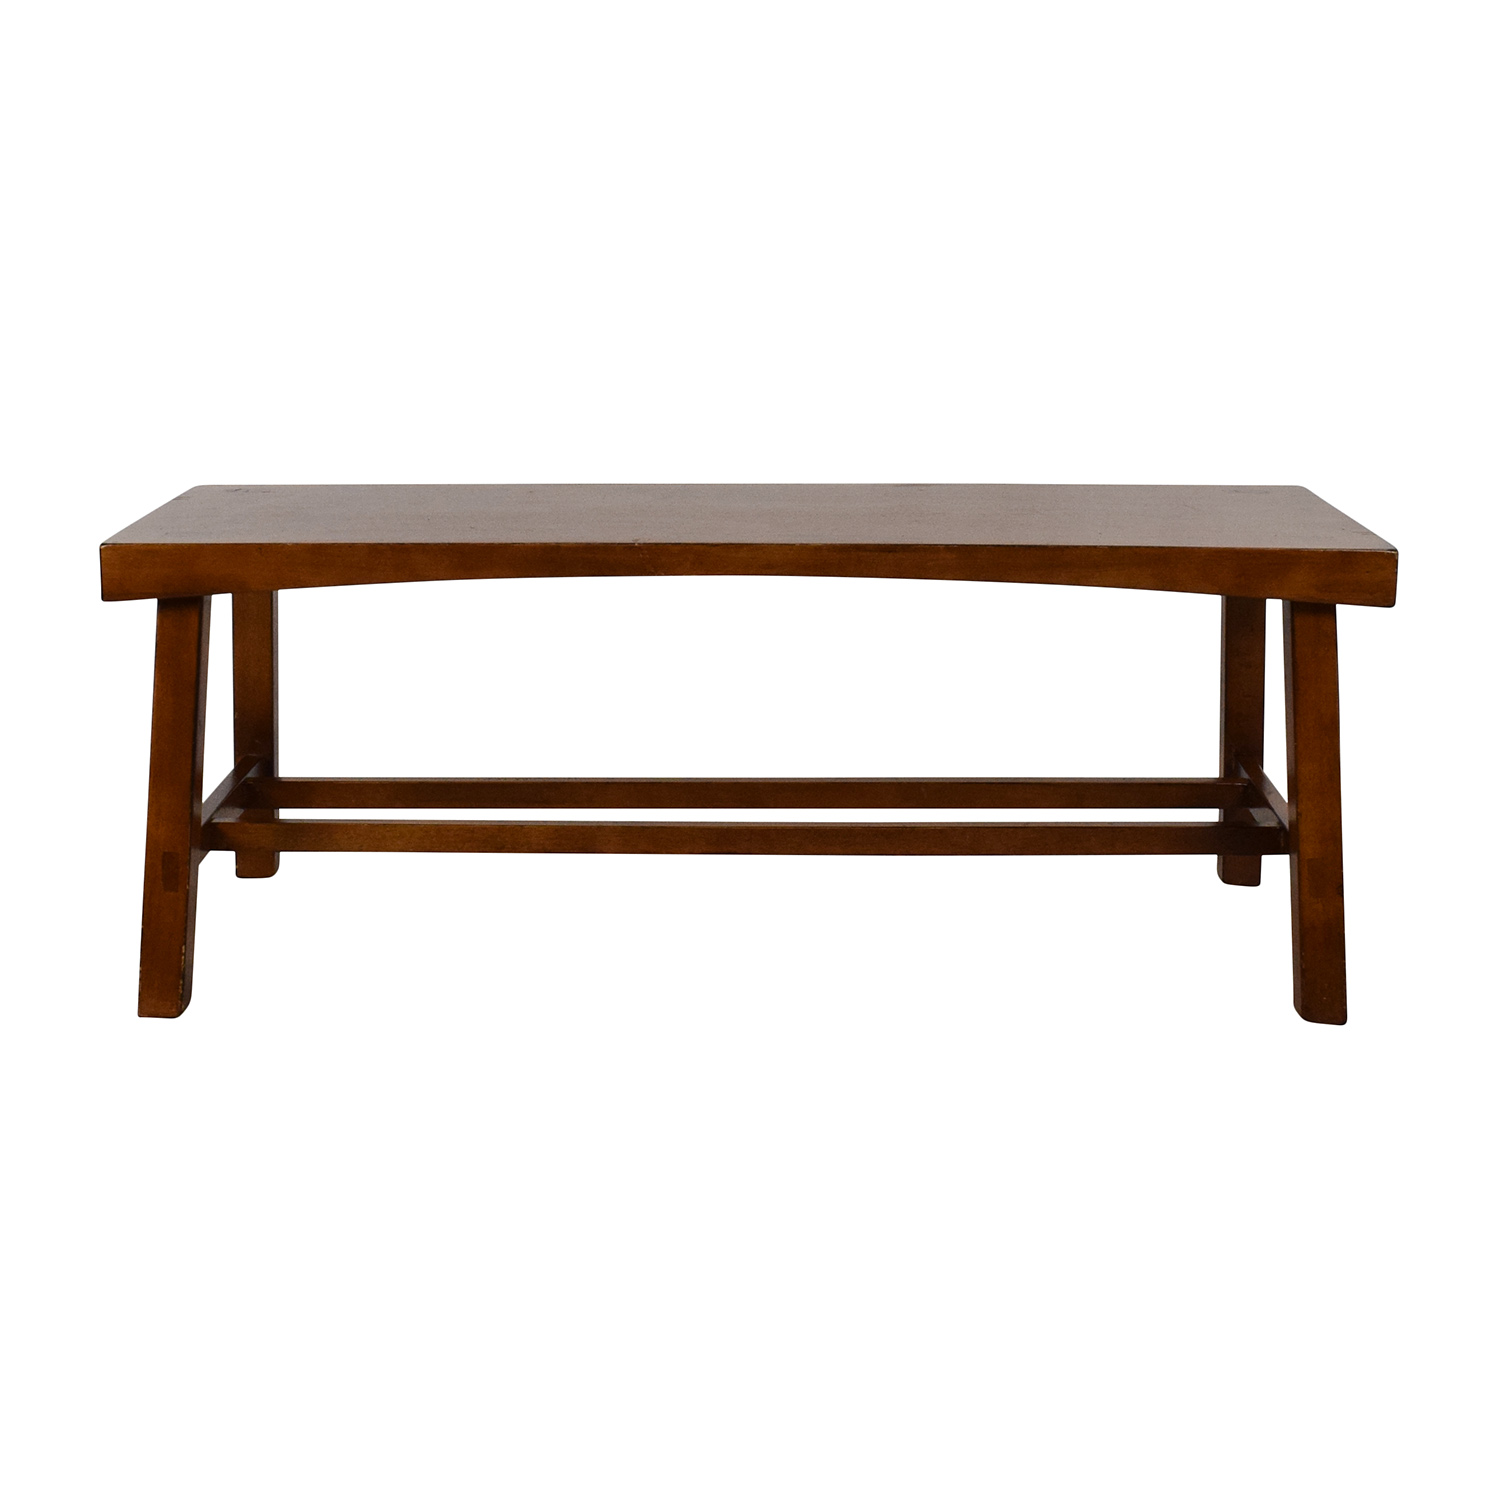 buy Crate & Barrel Wooden Coffee Table Crate and Barrel Tables